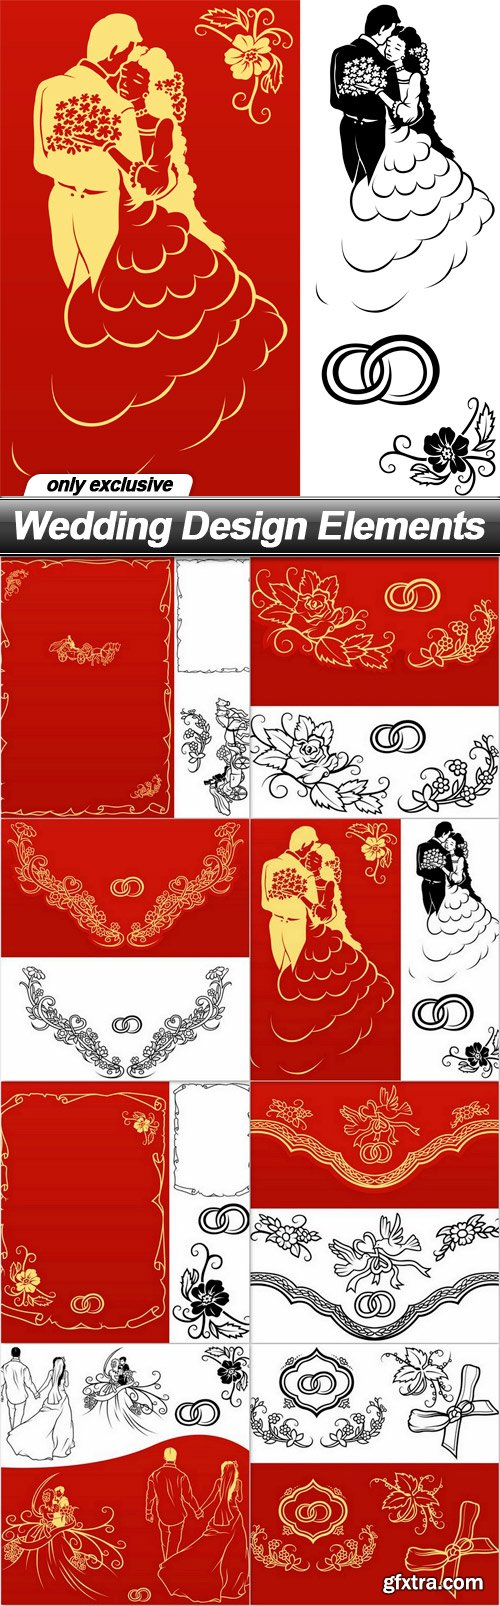 Wedding Design Elements - 8 UHQ JPEG